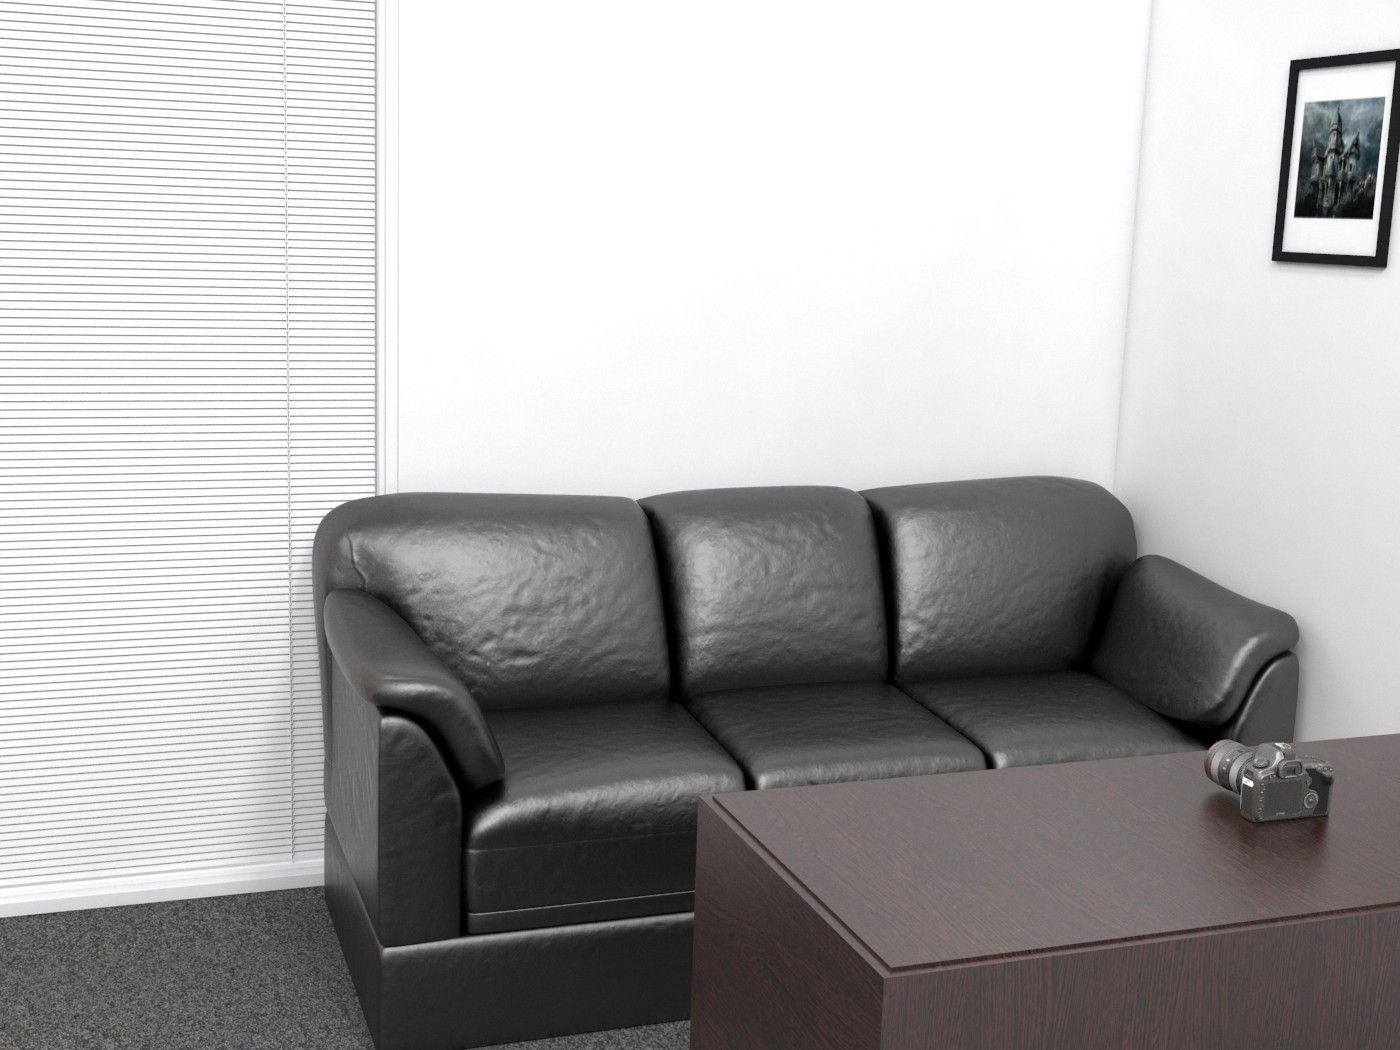 99 Funny Zoom Virtual Backgrounds To Download Man Of Many Man Room I Got The Job Couch